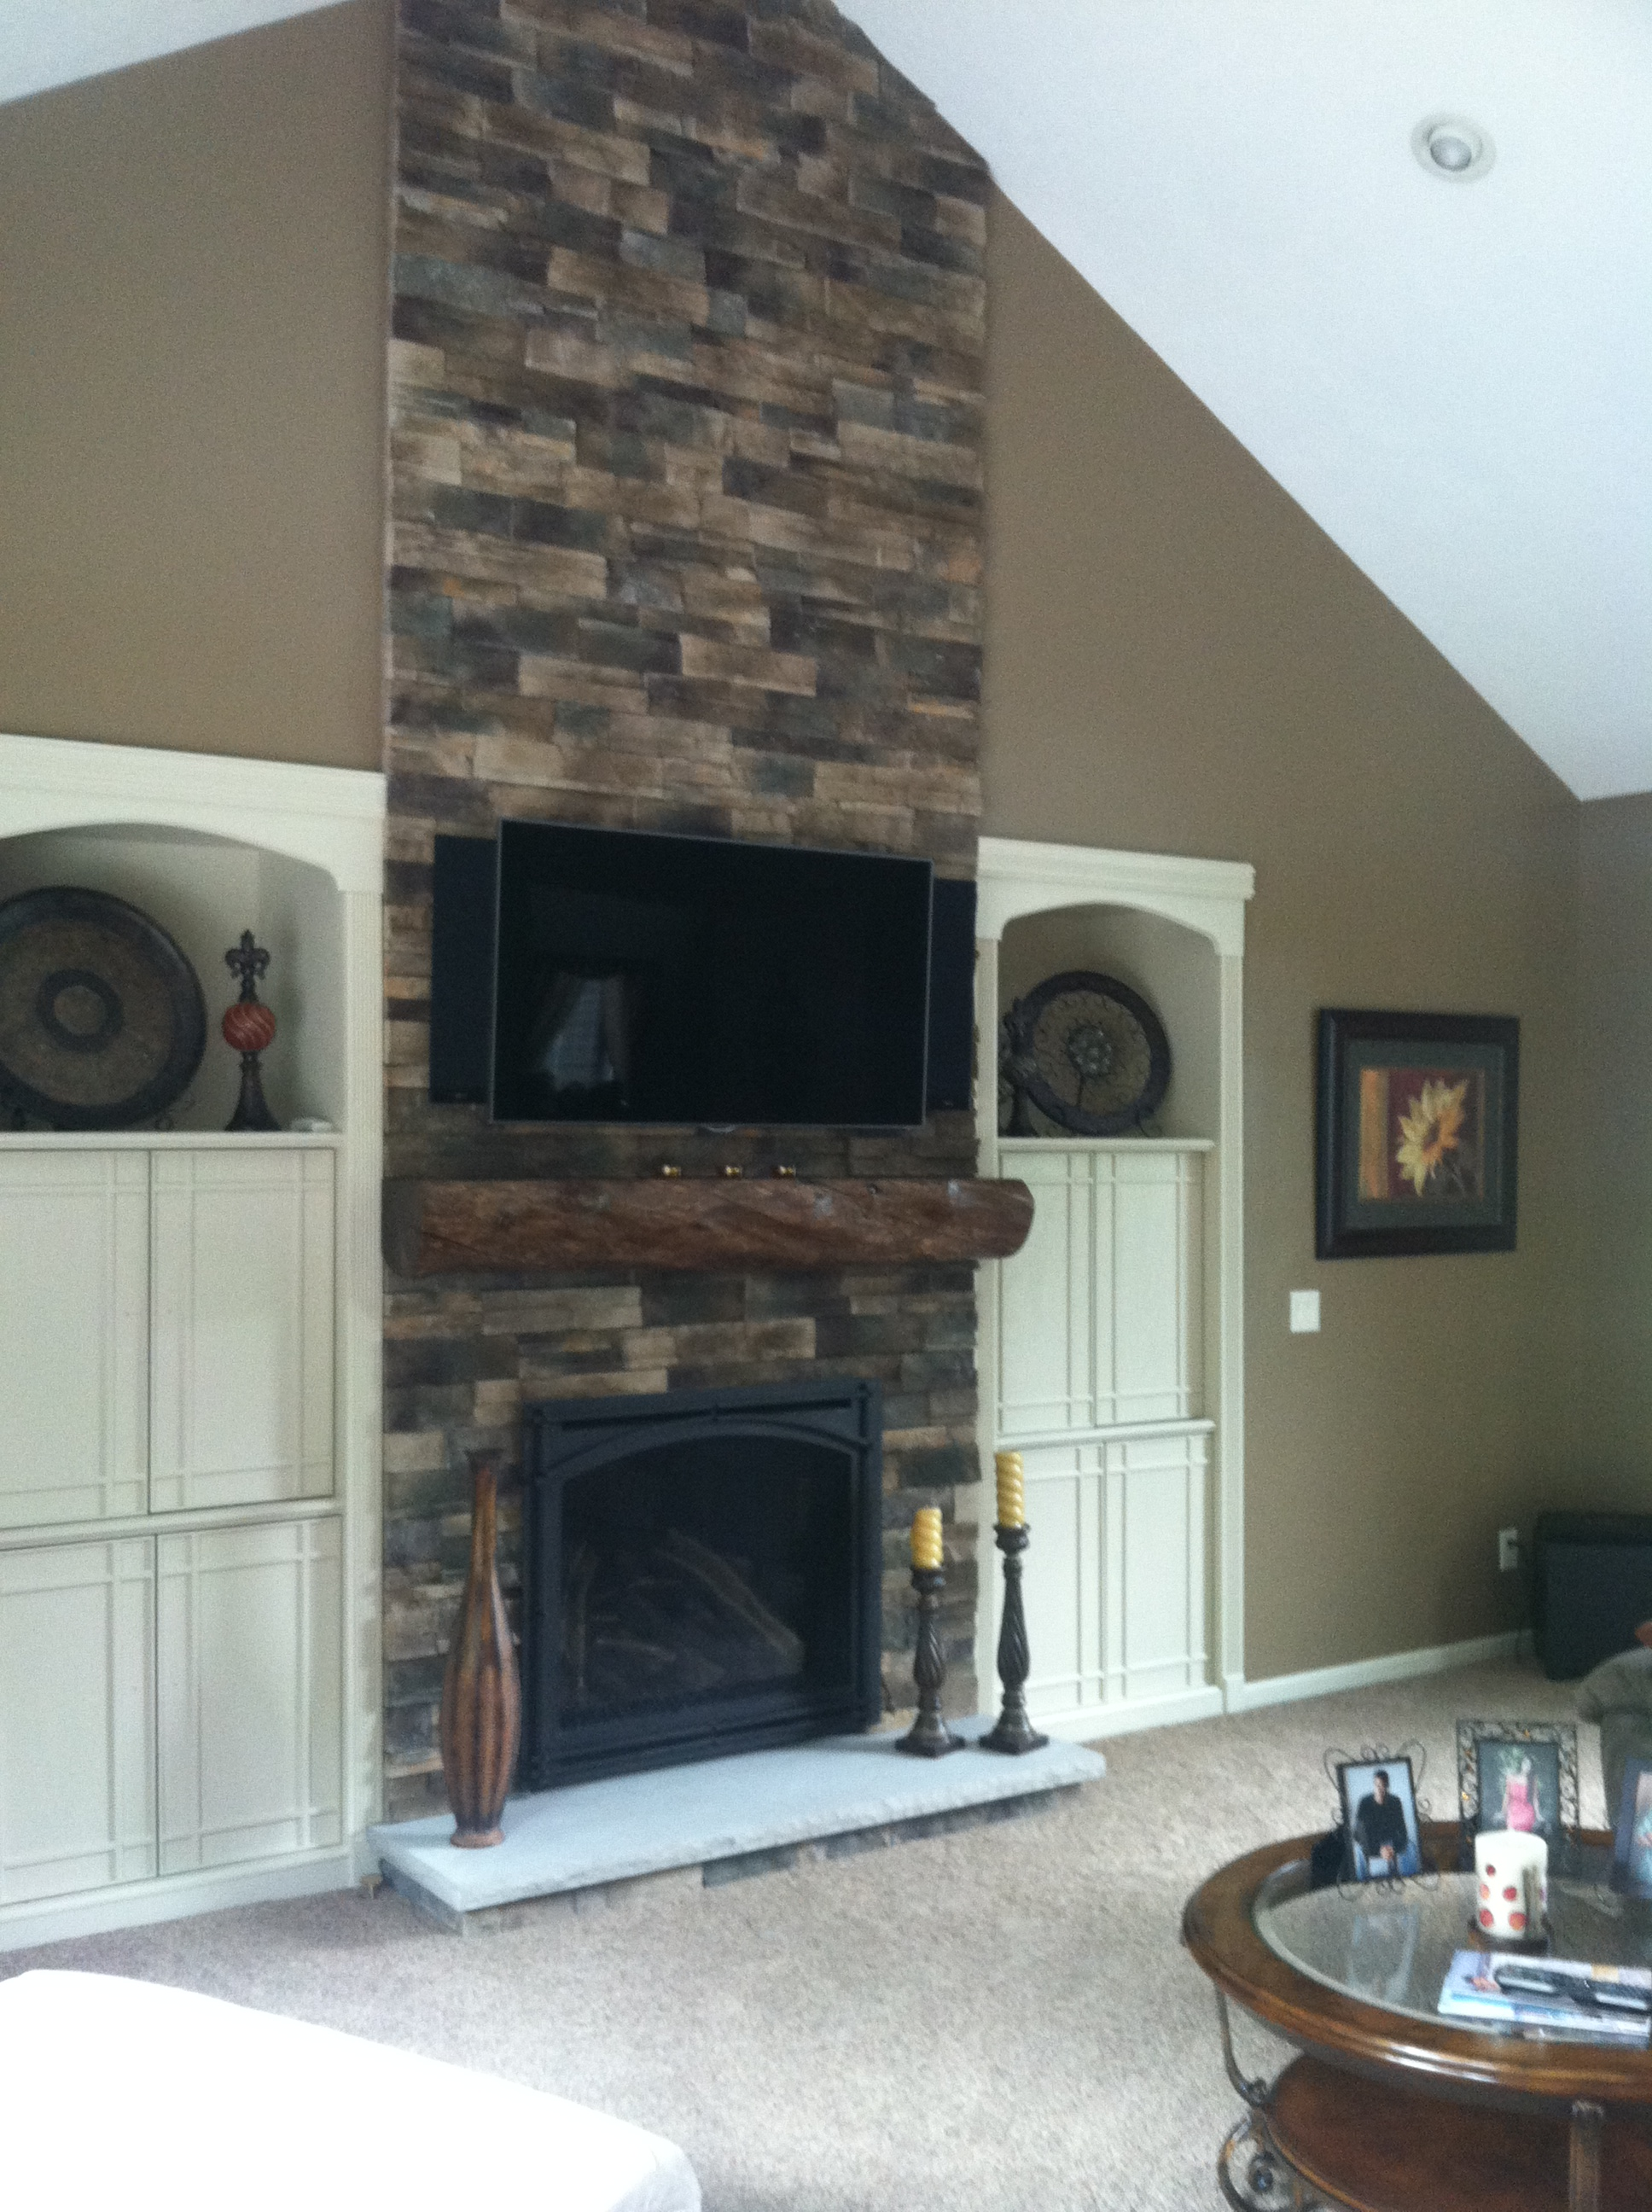 Image of a traditional Carlton 39 gas fireplace by Kozy Heat featuring rustic stonework facing and built in cabinets.